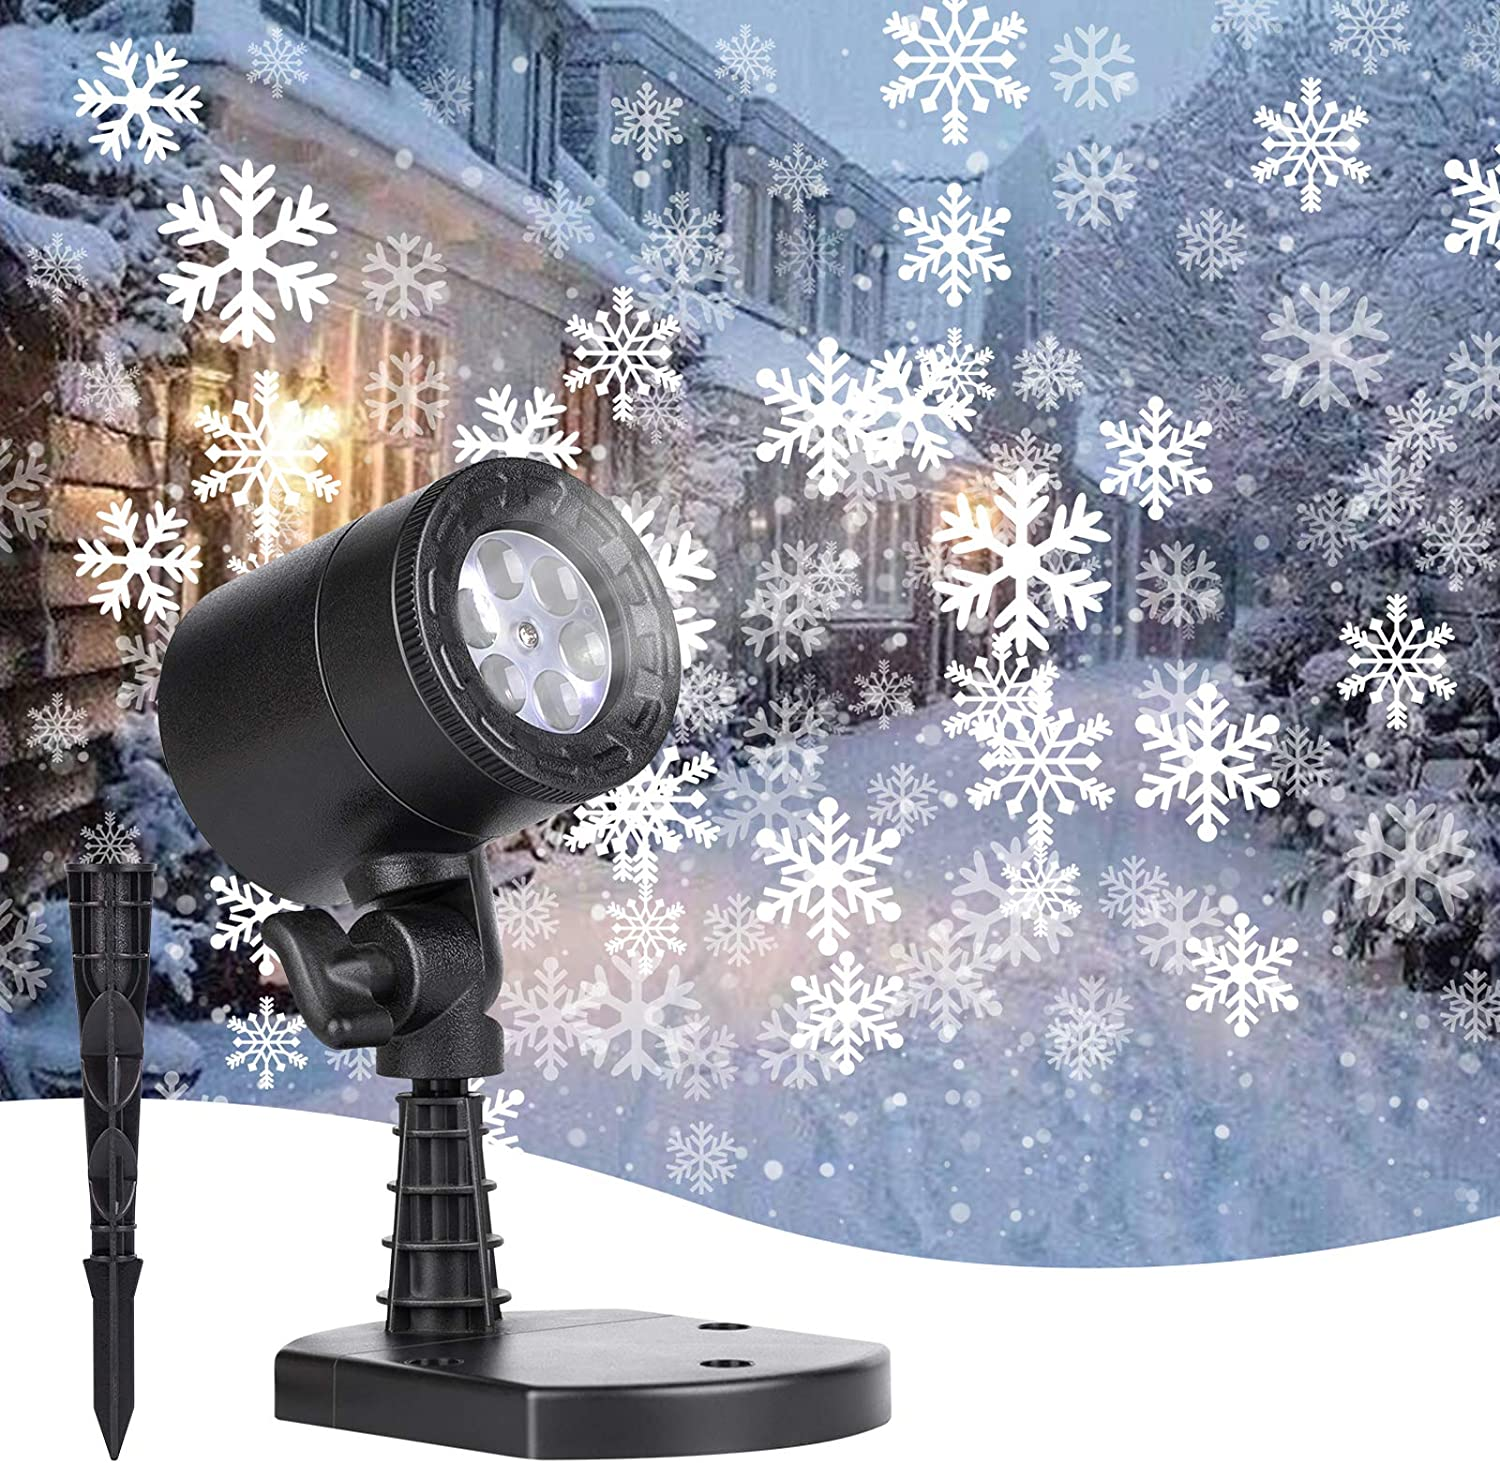 Christmas Projector Lights Outdoor, Led Snowflake Landscape Lights Waterproof Plug in Moving Effect Wall Mountable for Christmas Holiday Indoor Home Party New Year Decoration Show